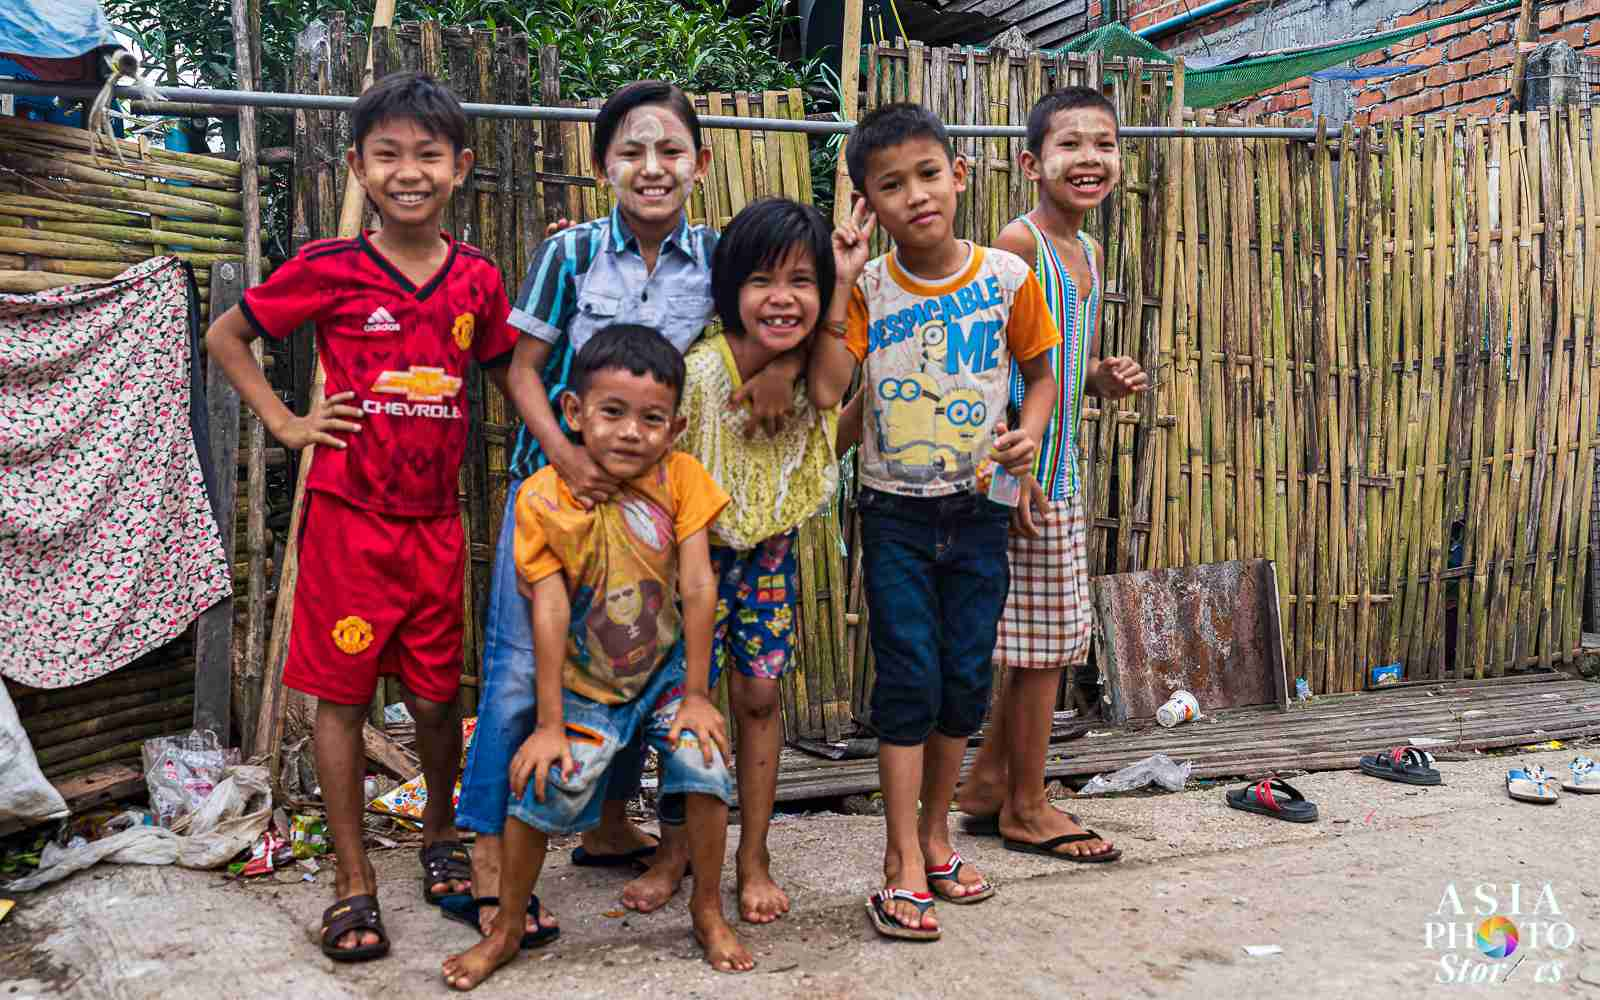 Children pose for the camera at a slum village off the Yangon train line.